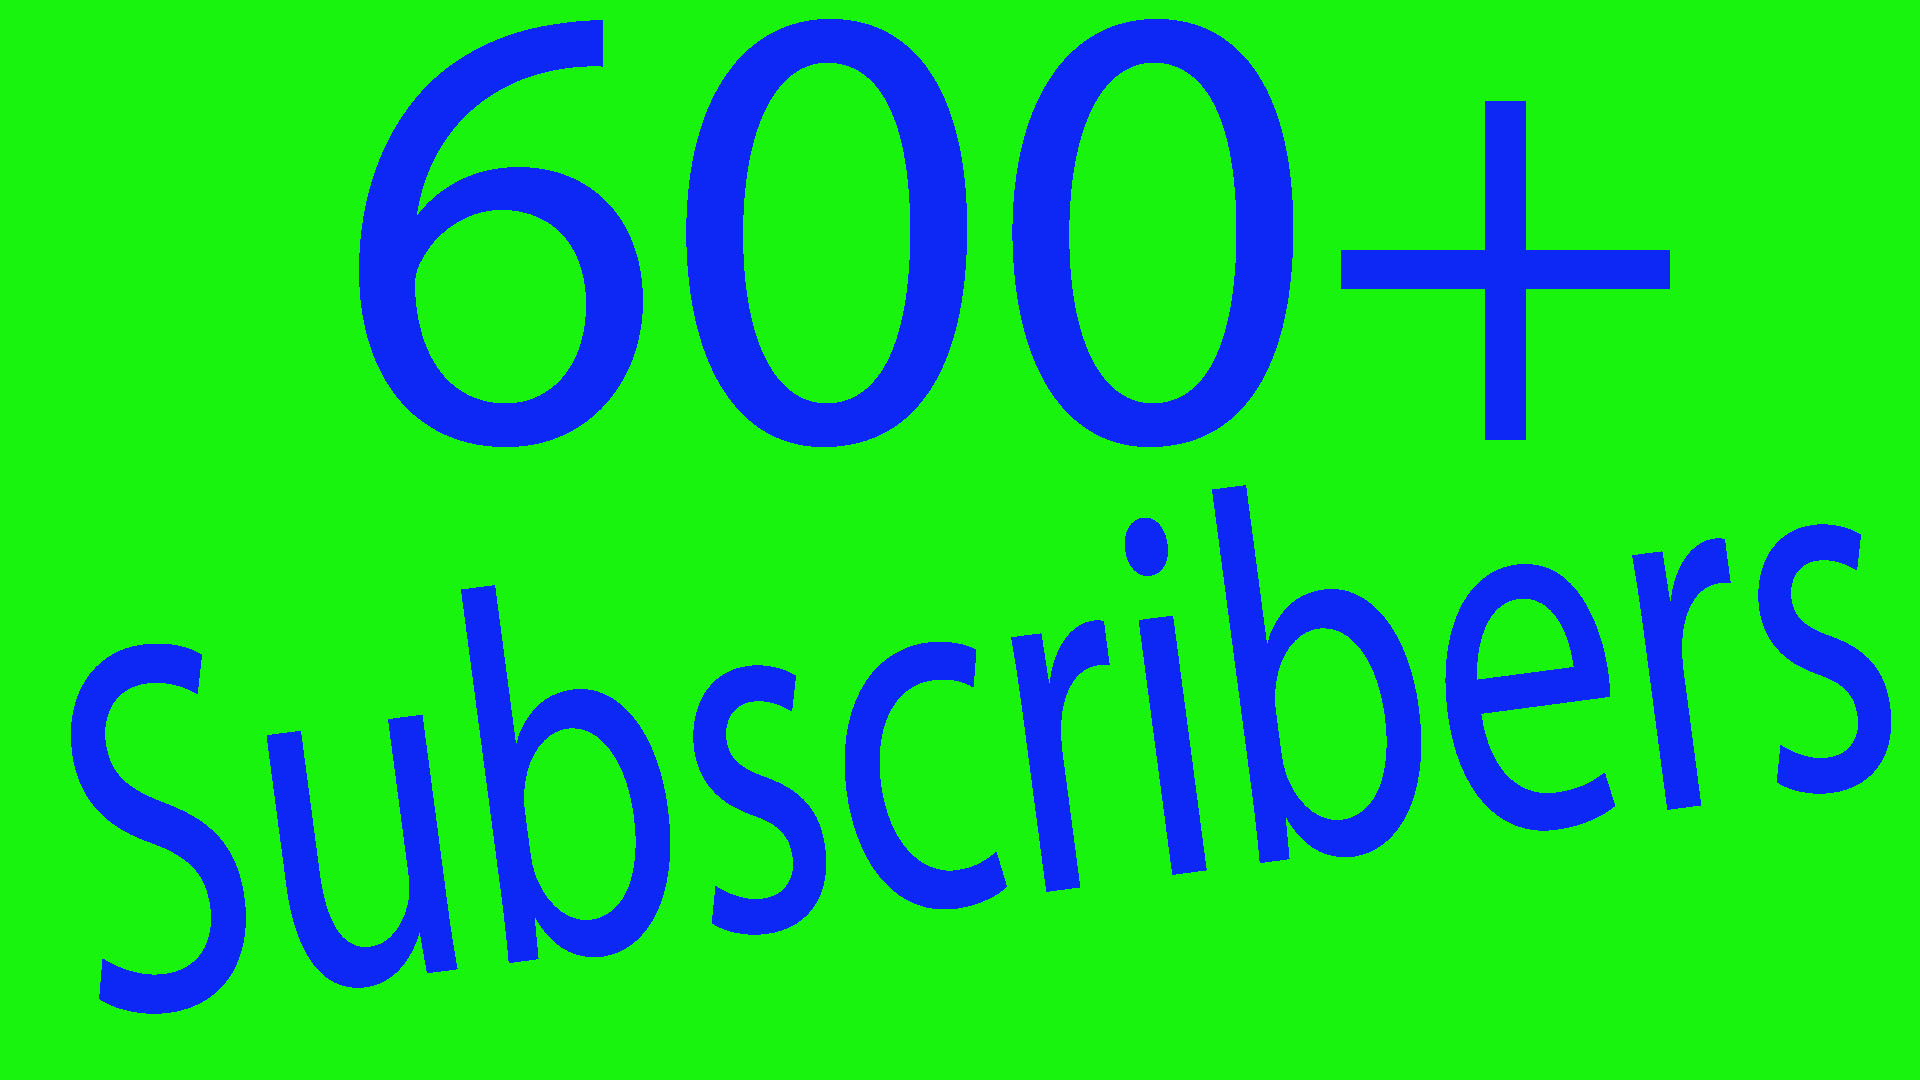 Super fast 600 permanent Youtube subs